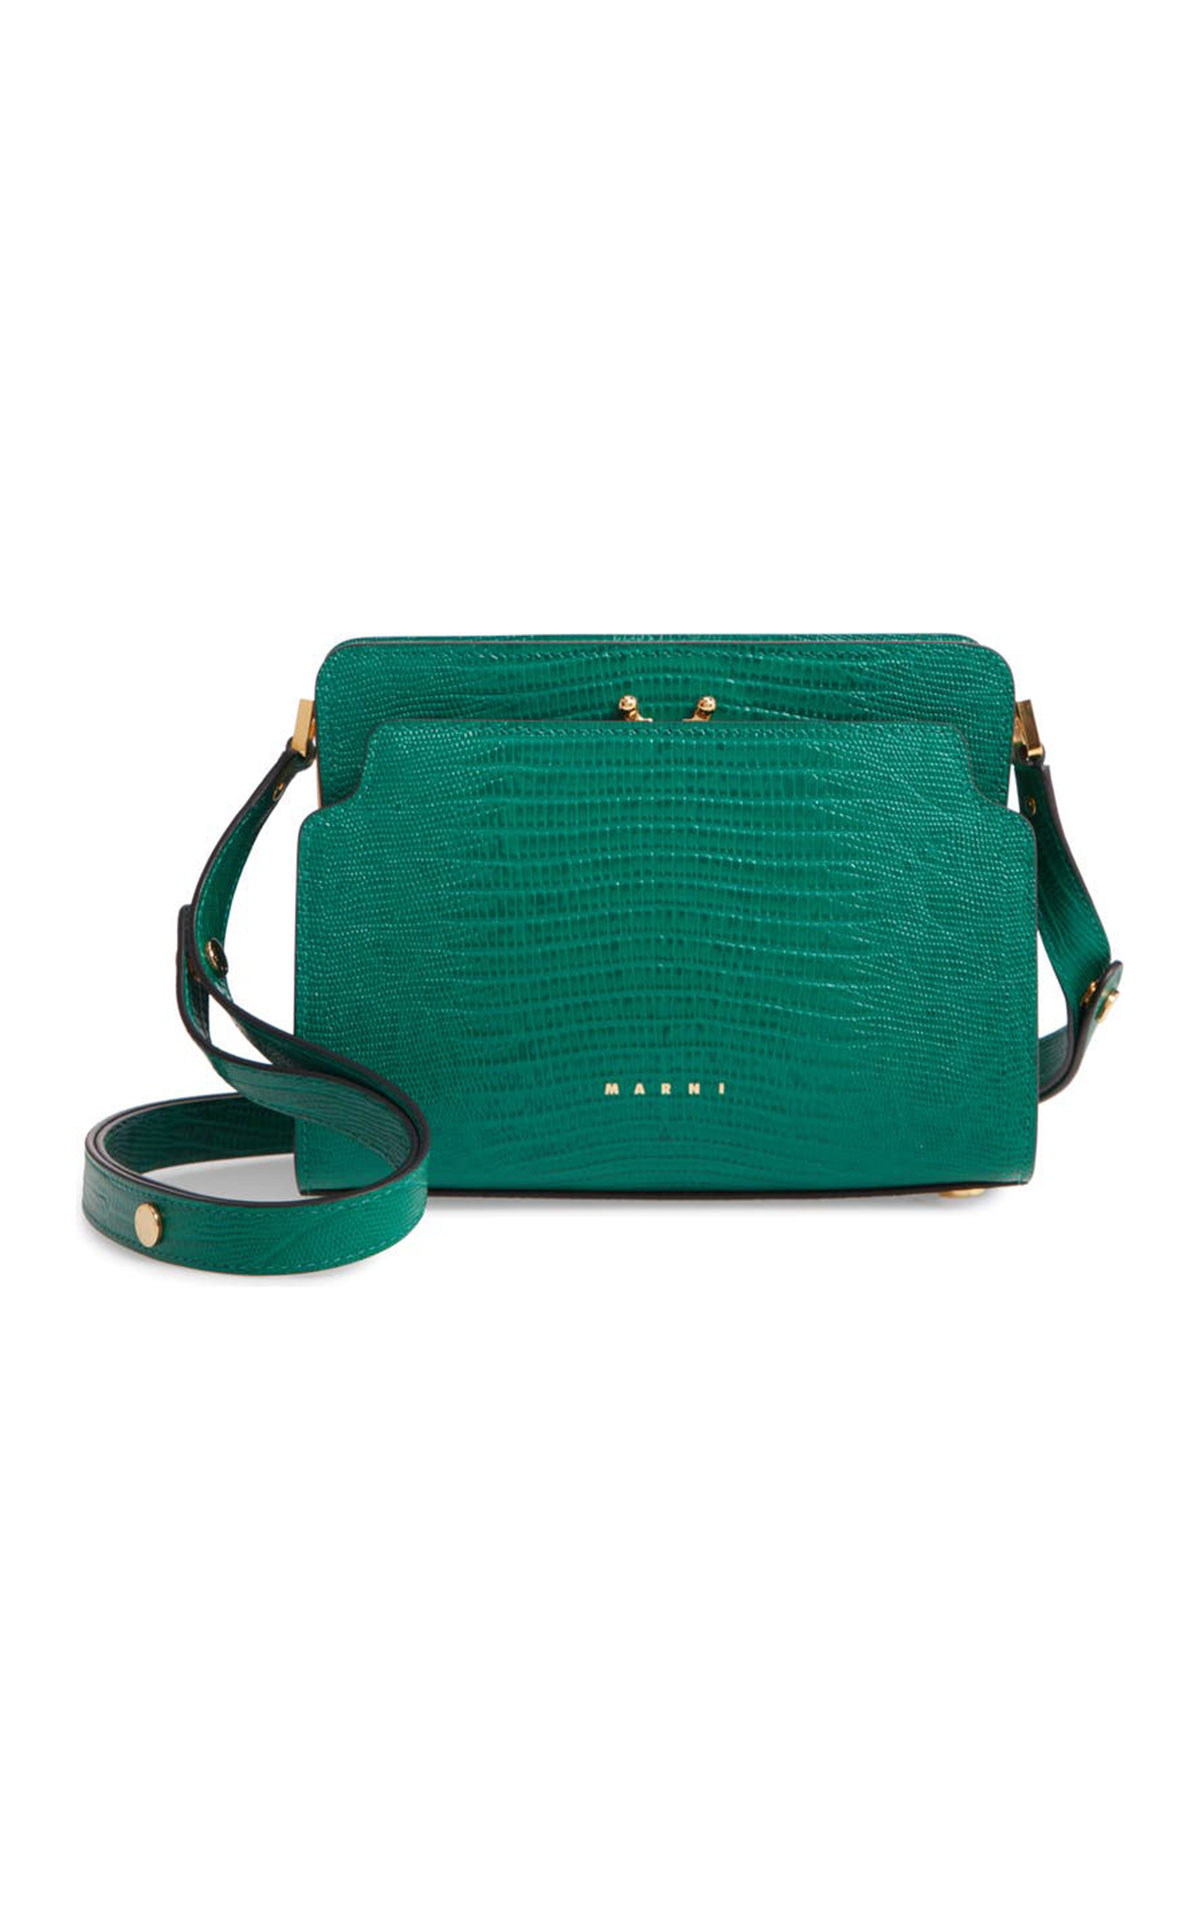 Turquoise bag for woman Marni